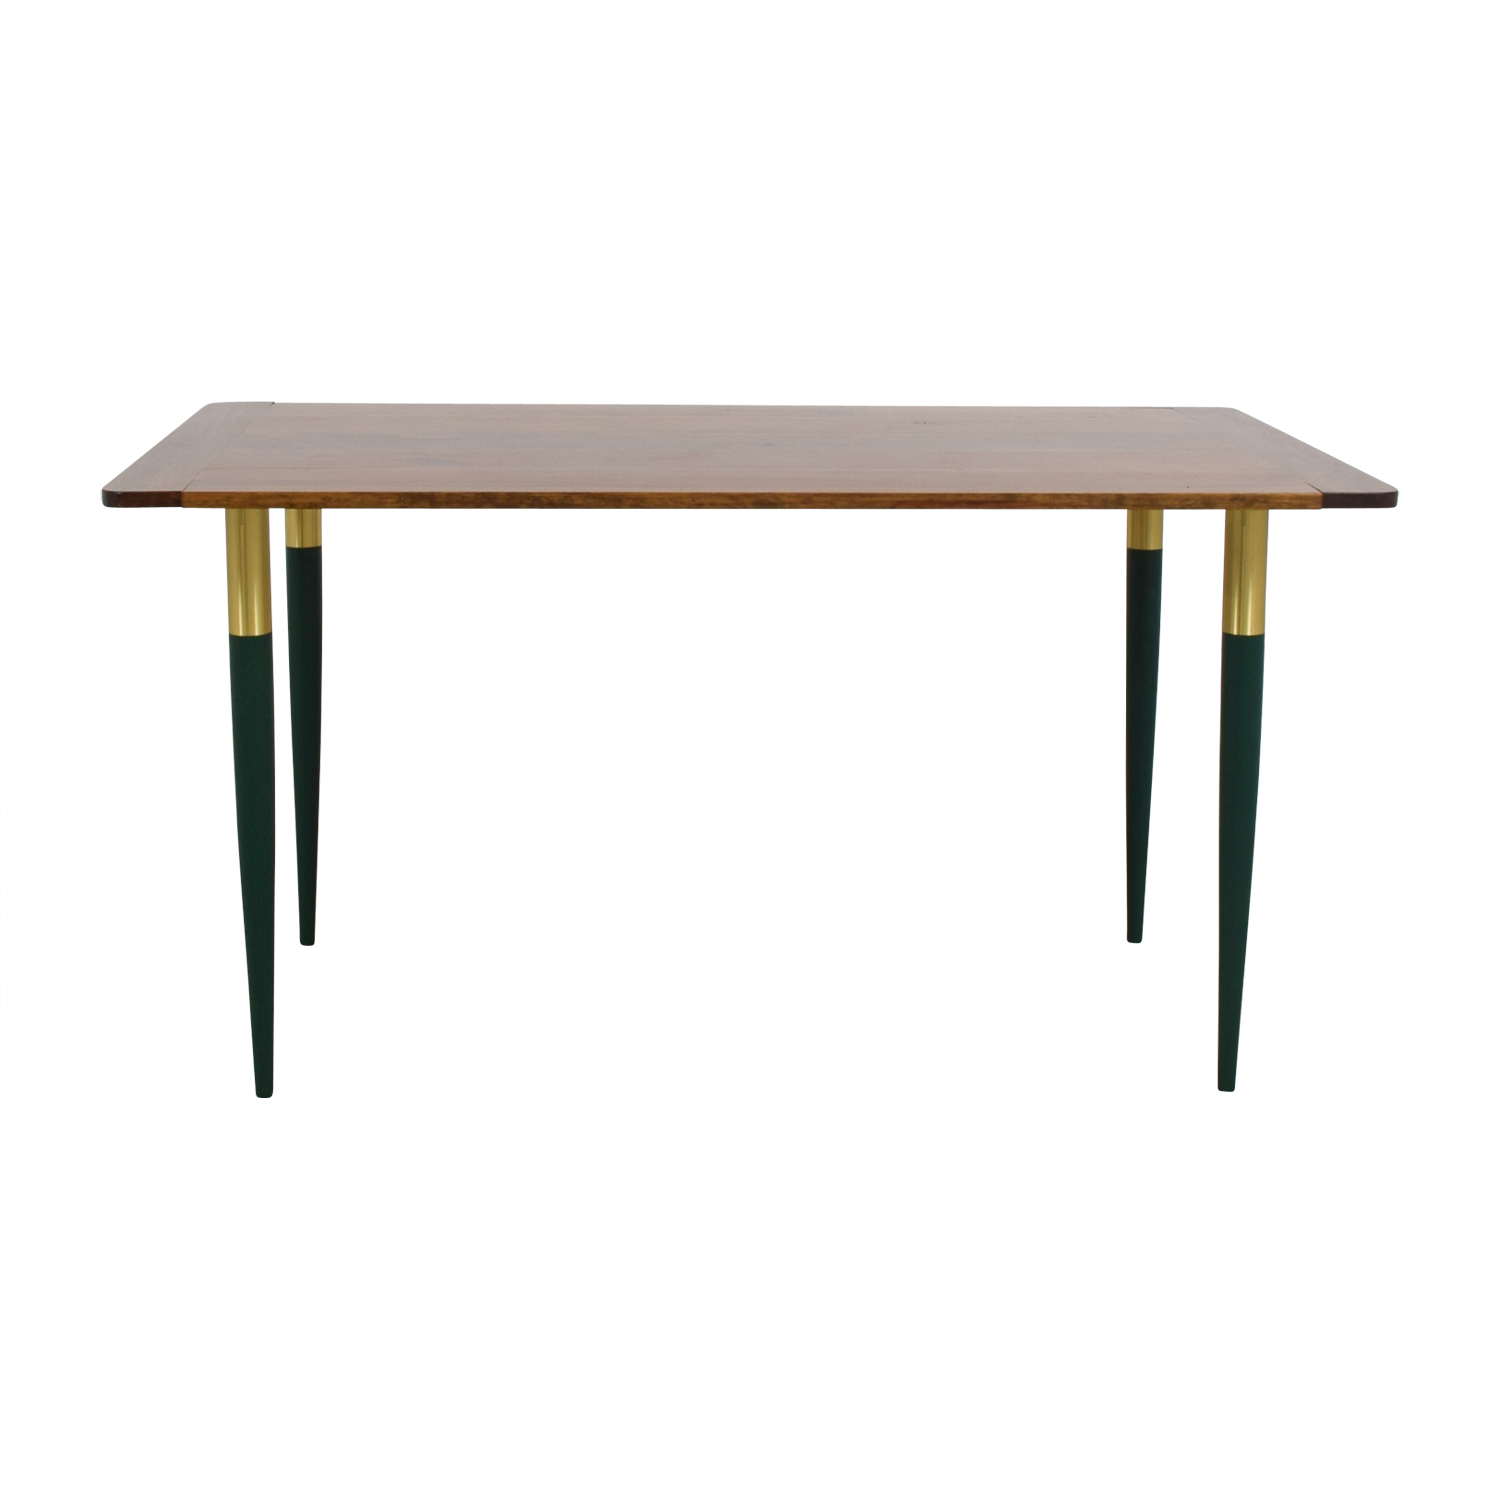 Custom Rustic Wood with Green Leg Table coupon